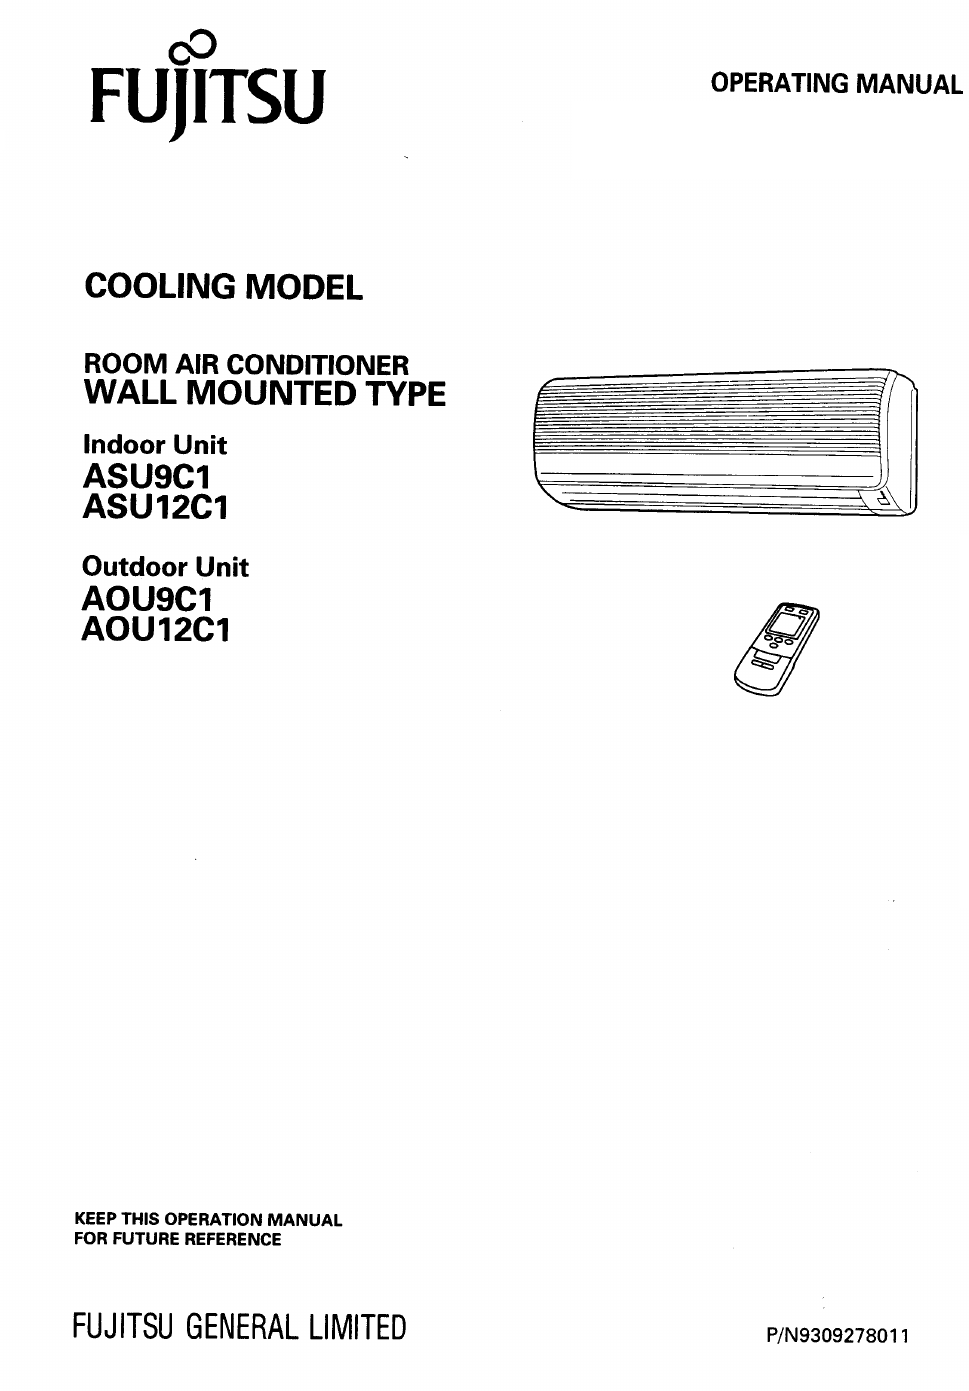 fujitsu asu9c1 asu12c1 aou9c1 aou12c1 user s manual free pdf rh manualagent com fujitsu air conditioner manual r410a fujitsu service manual air conditioner